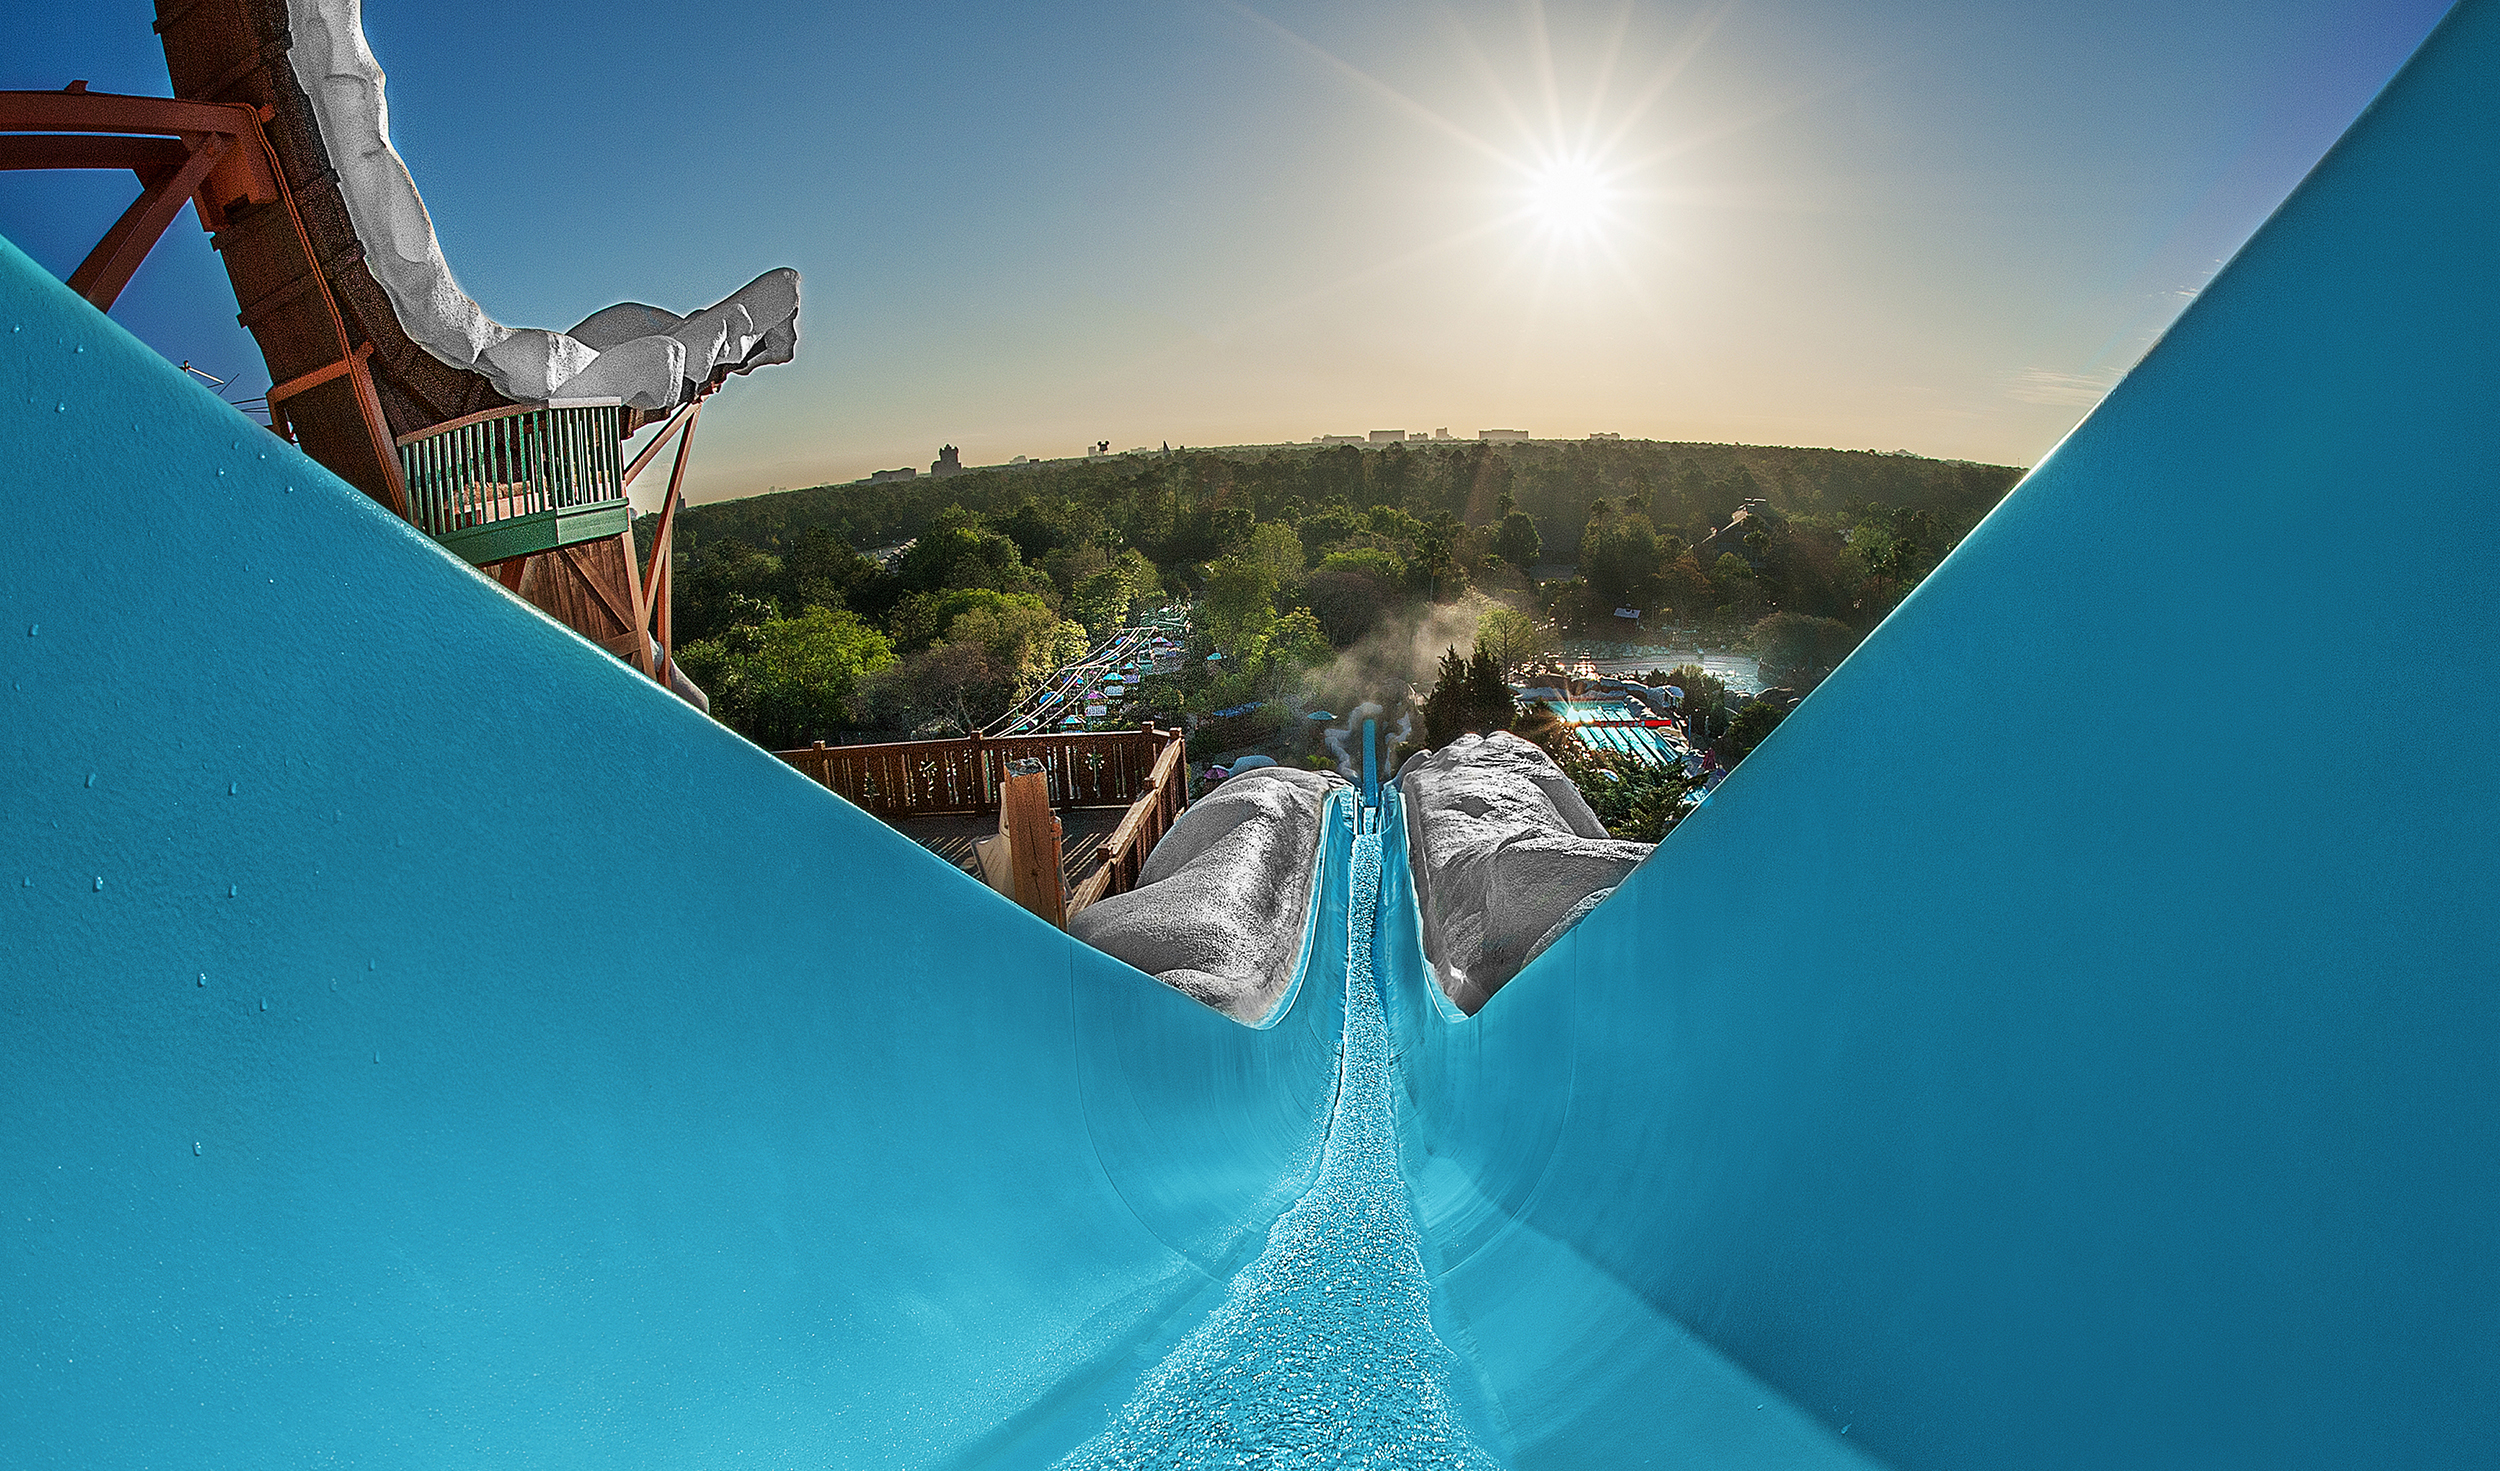 Slush Gusher, a high-speed waterslide, stretches downhill from the Mount Gushmore's summit